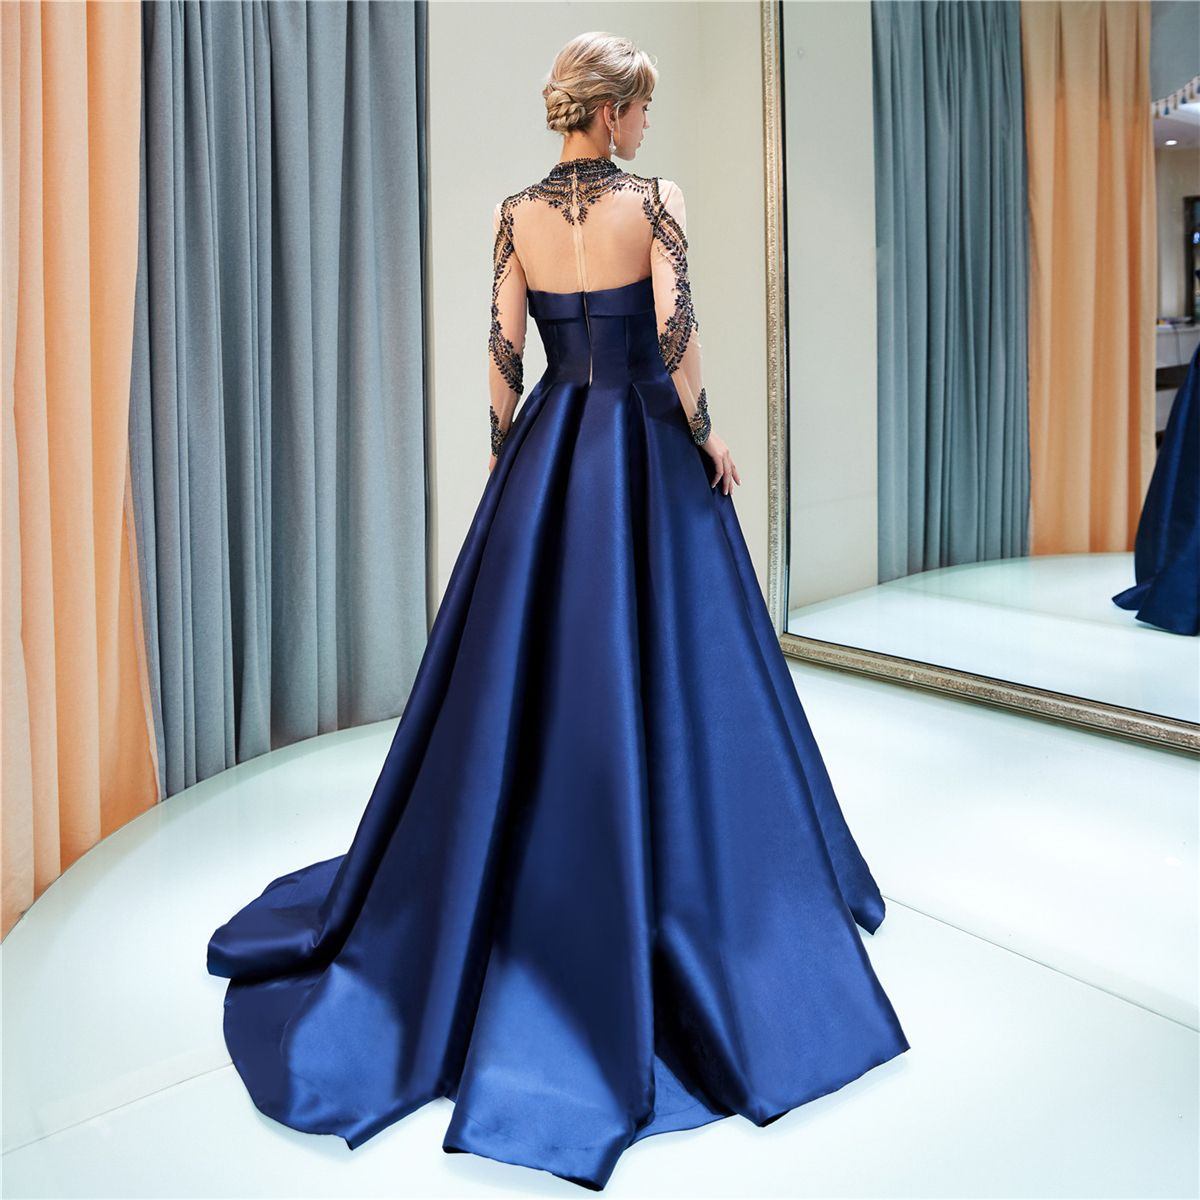 Luxury / Gorgeous Navy Blue Evening Dresses  2019 A-Line / Princess High Neck Beading Crystal Long Sleeve Sweep Train Formal Dresses